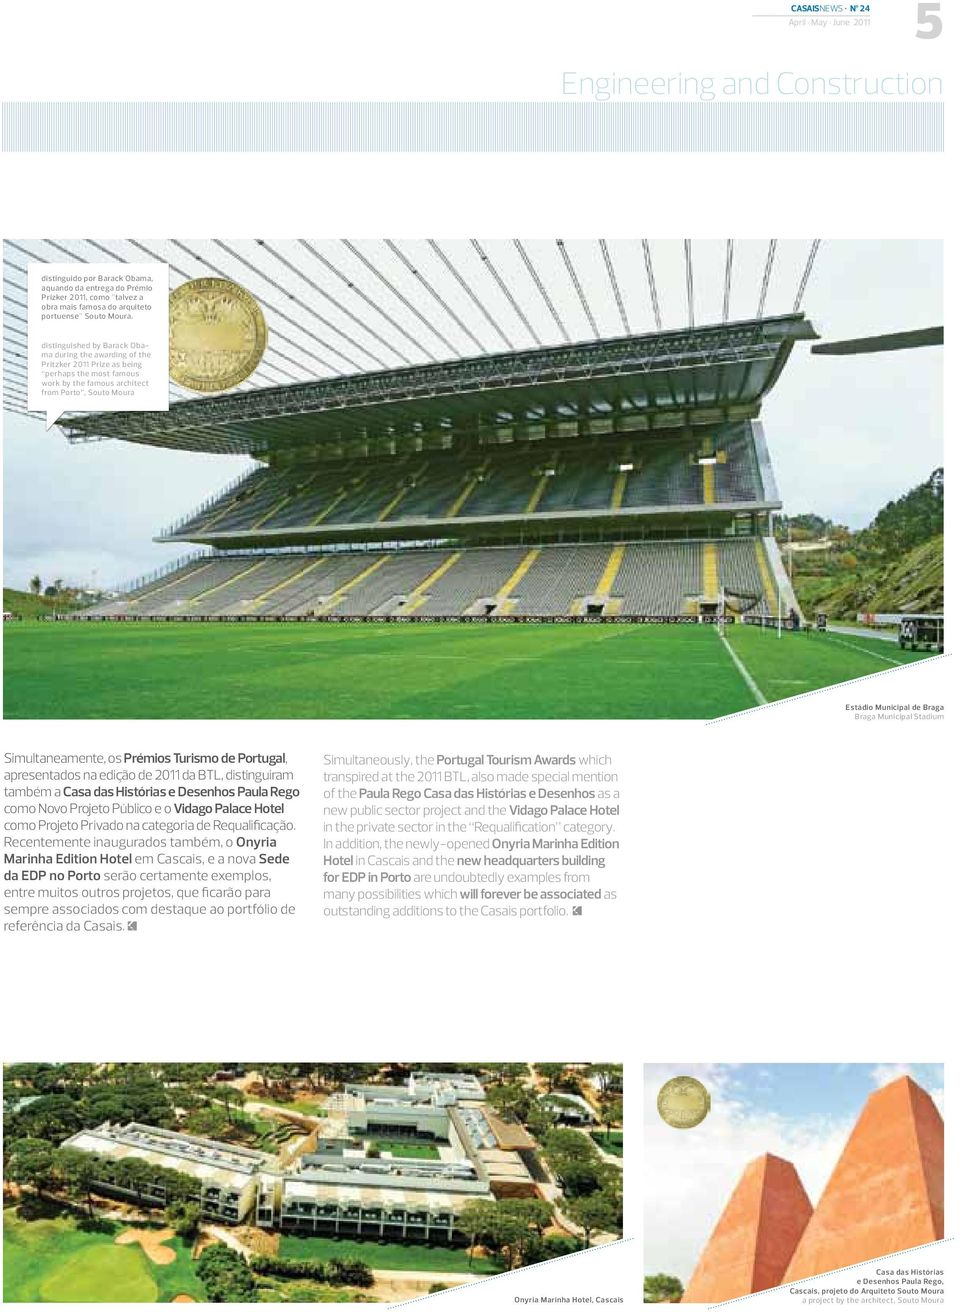 distinguished by Barack Obama during the awarding of the Pritzker 2011 Prize as being perhaps the most famous work by the famous architect from Porto, Souto Moura Estádio Municipal de Braga Braga